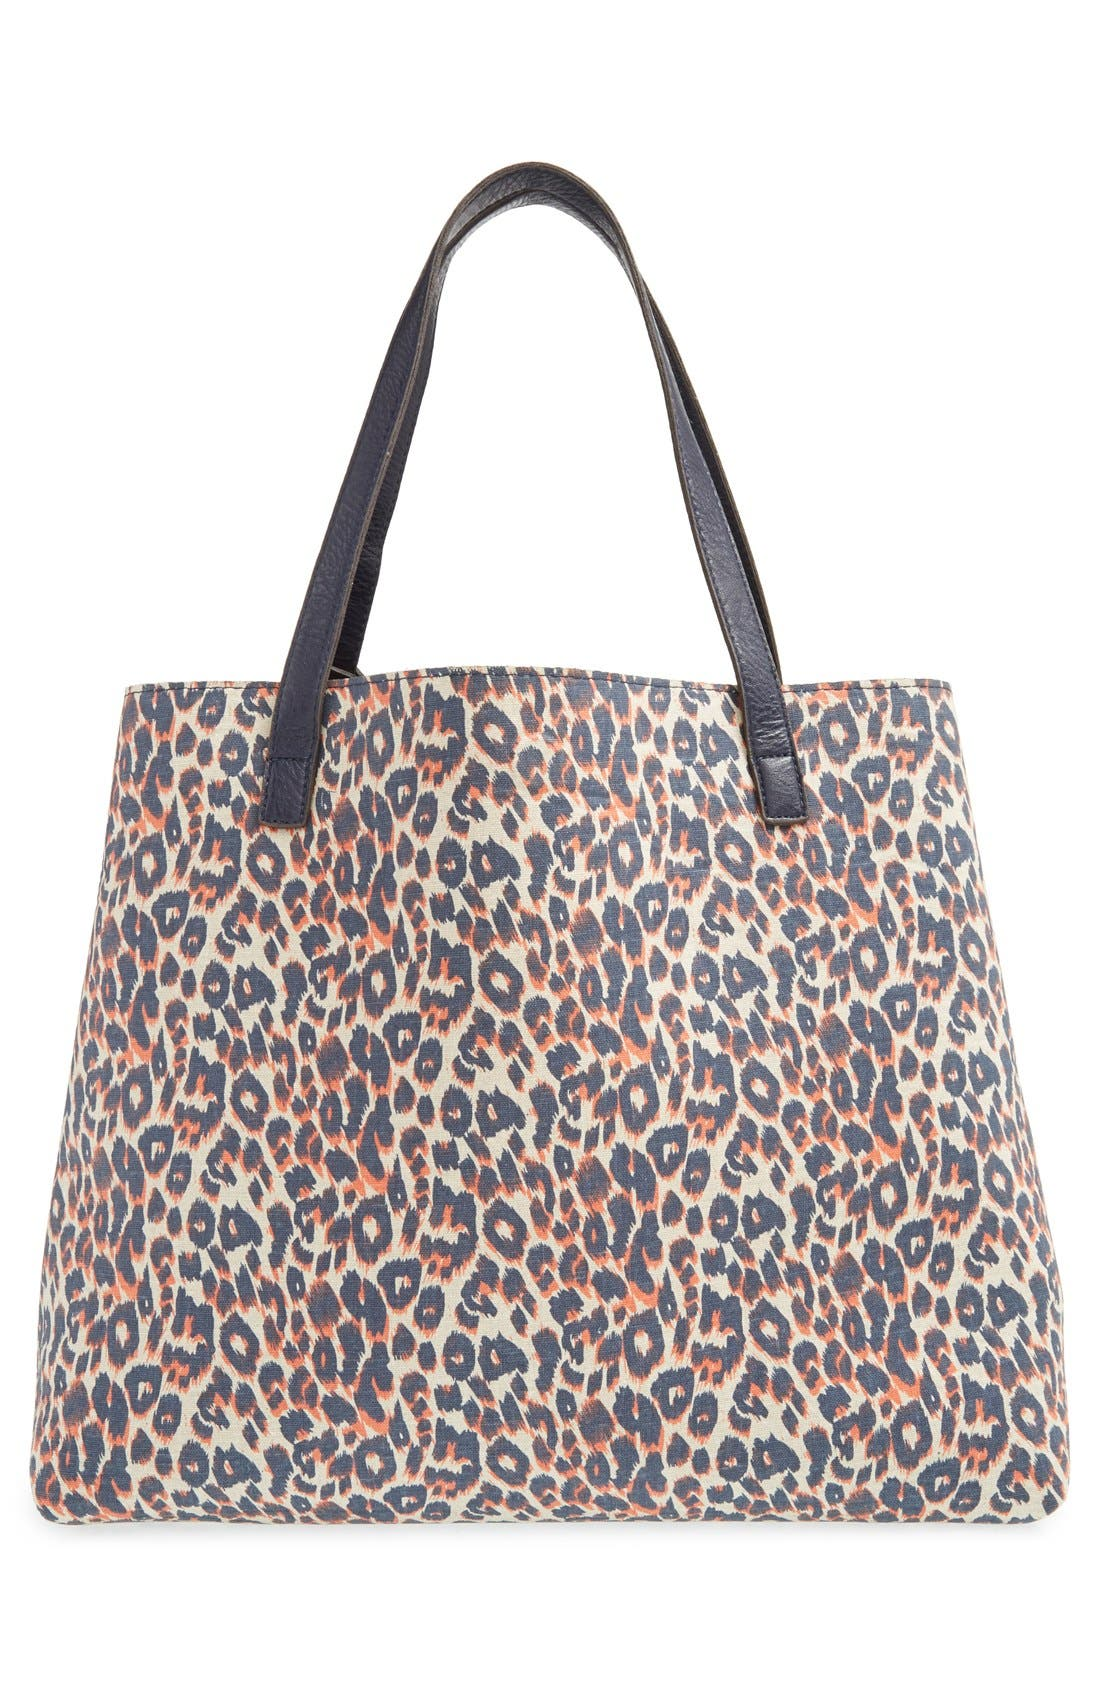 Alternate Image 1 Selected - Sole Society 'Milan' Reversible Tote